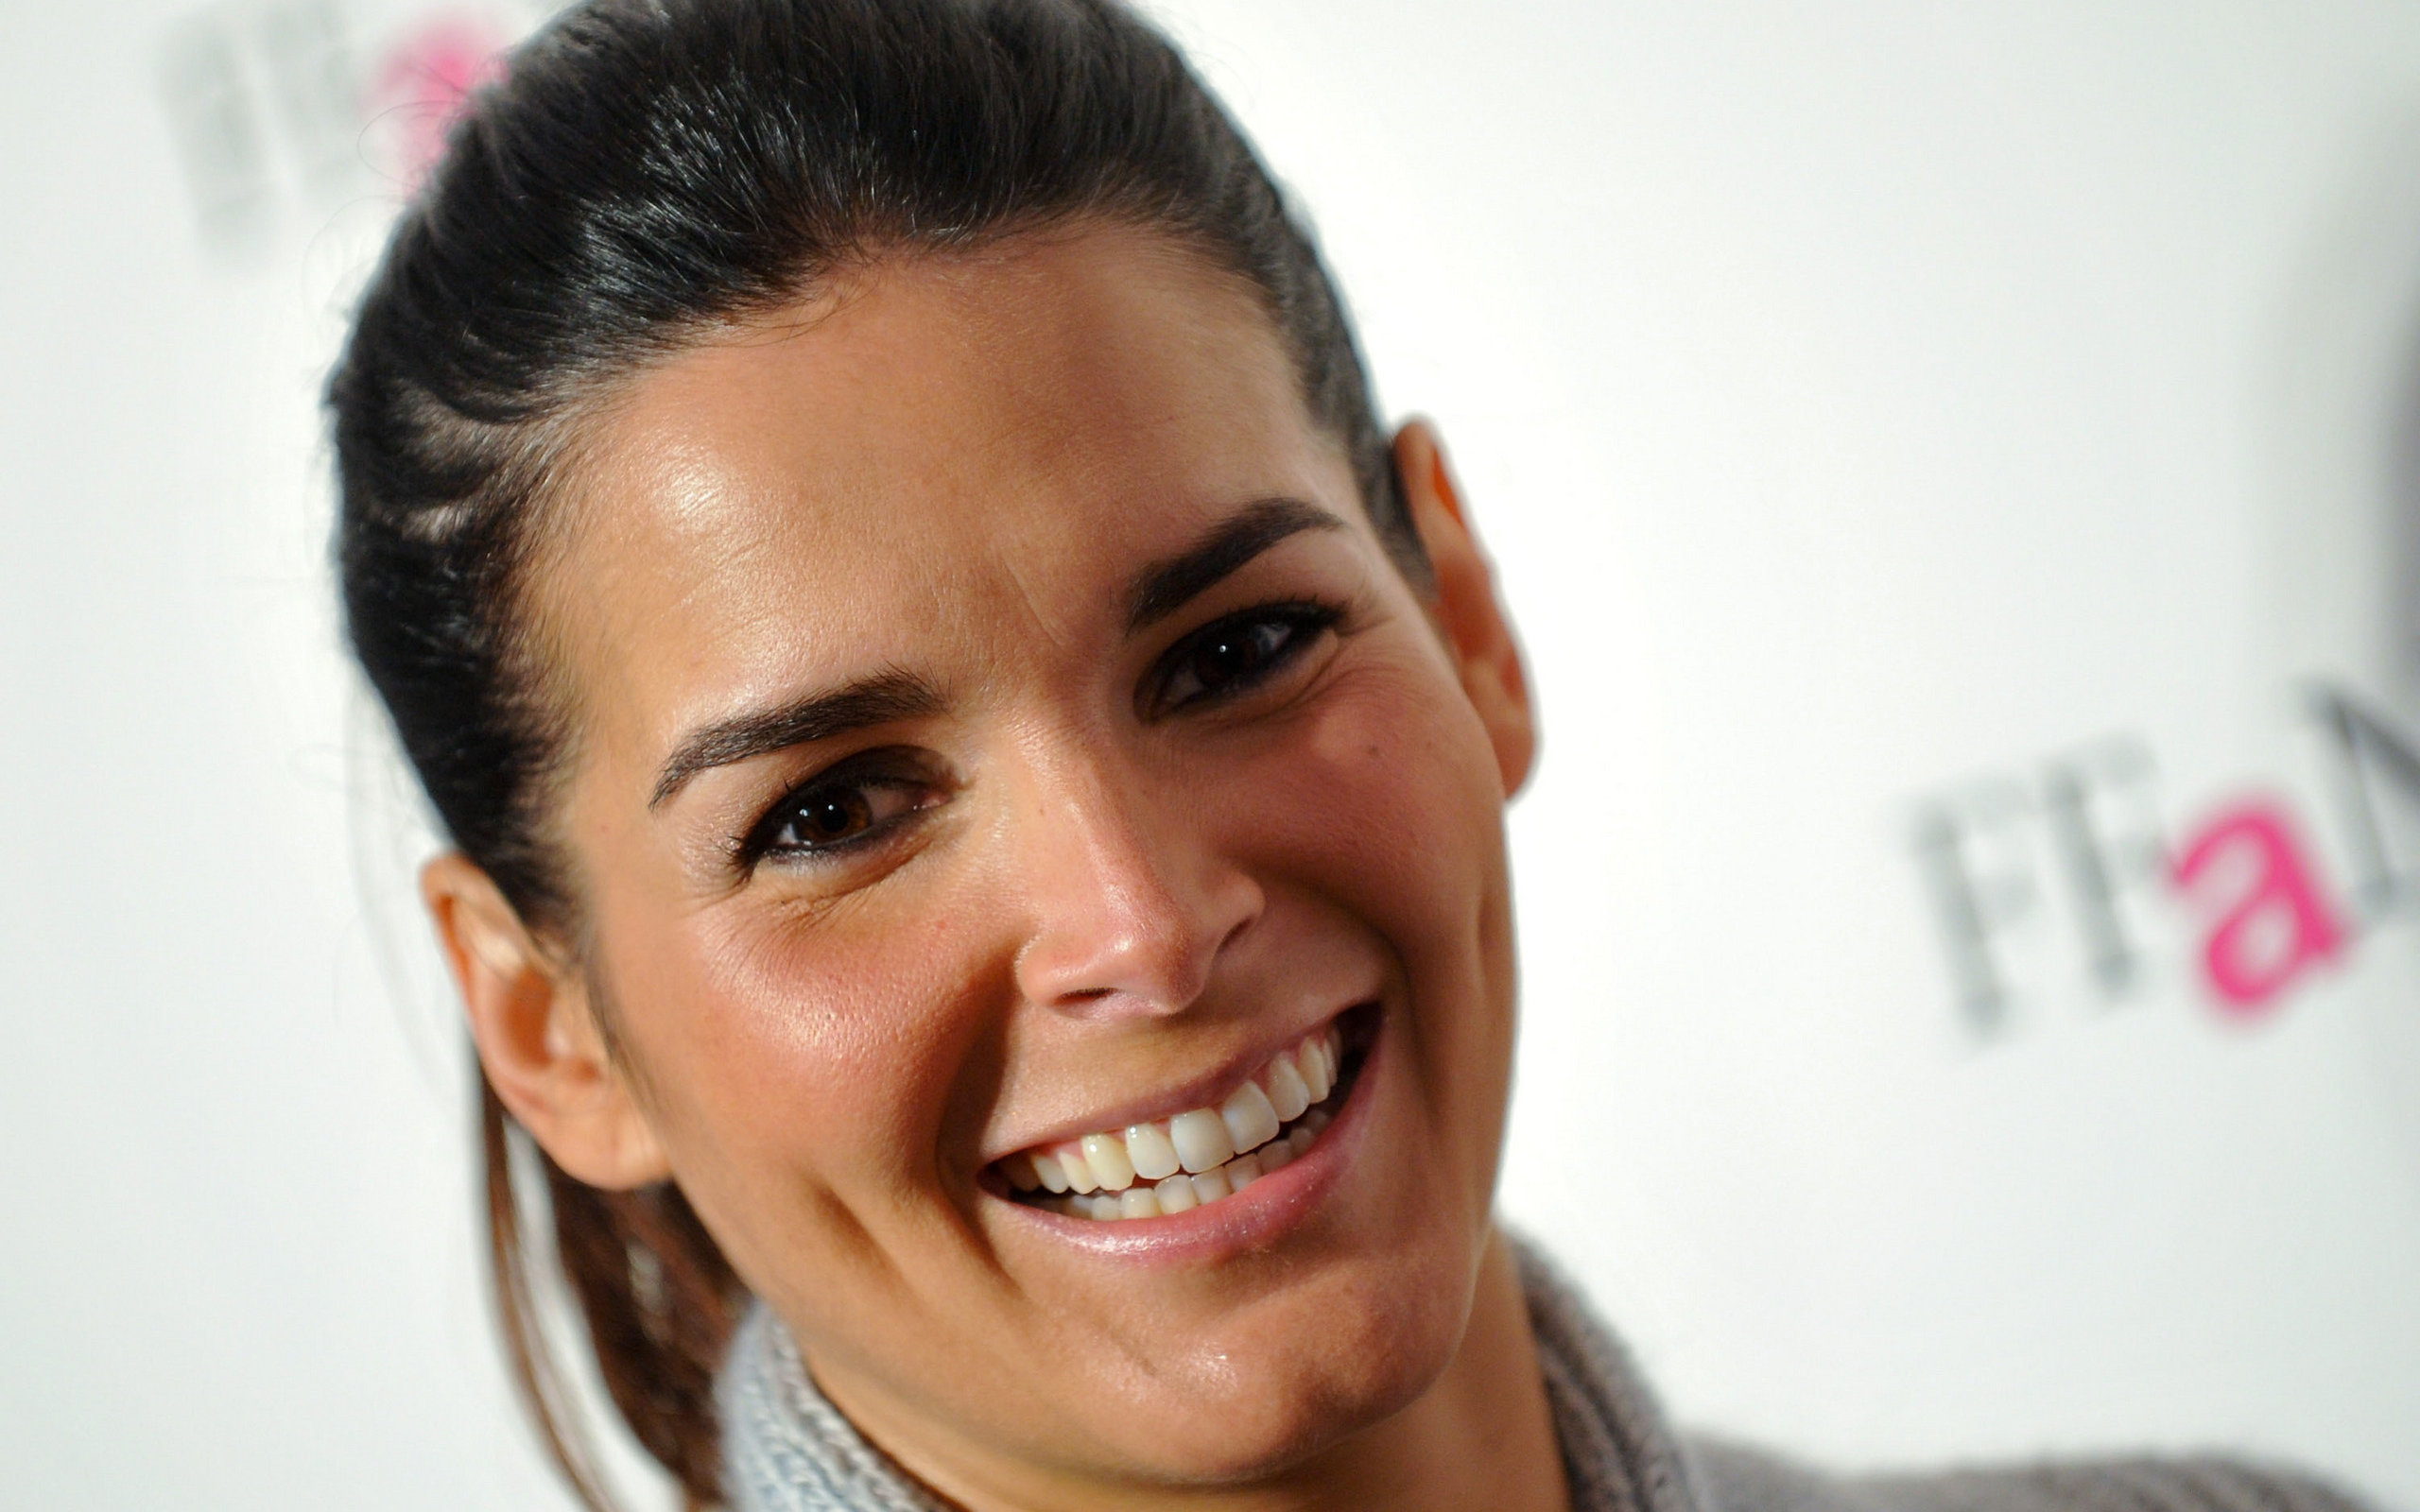 2560x1600 - Angie Harmon Wallpapers 6